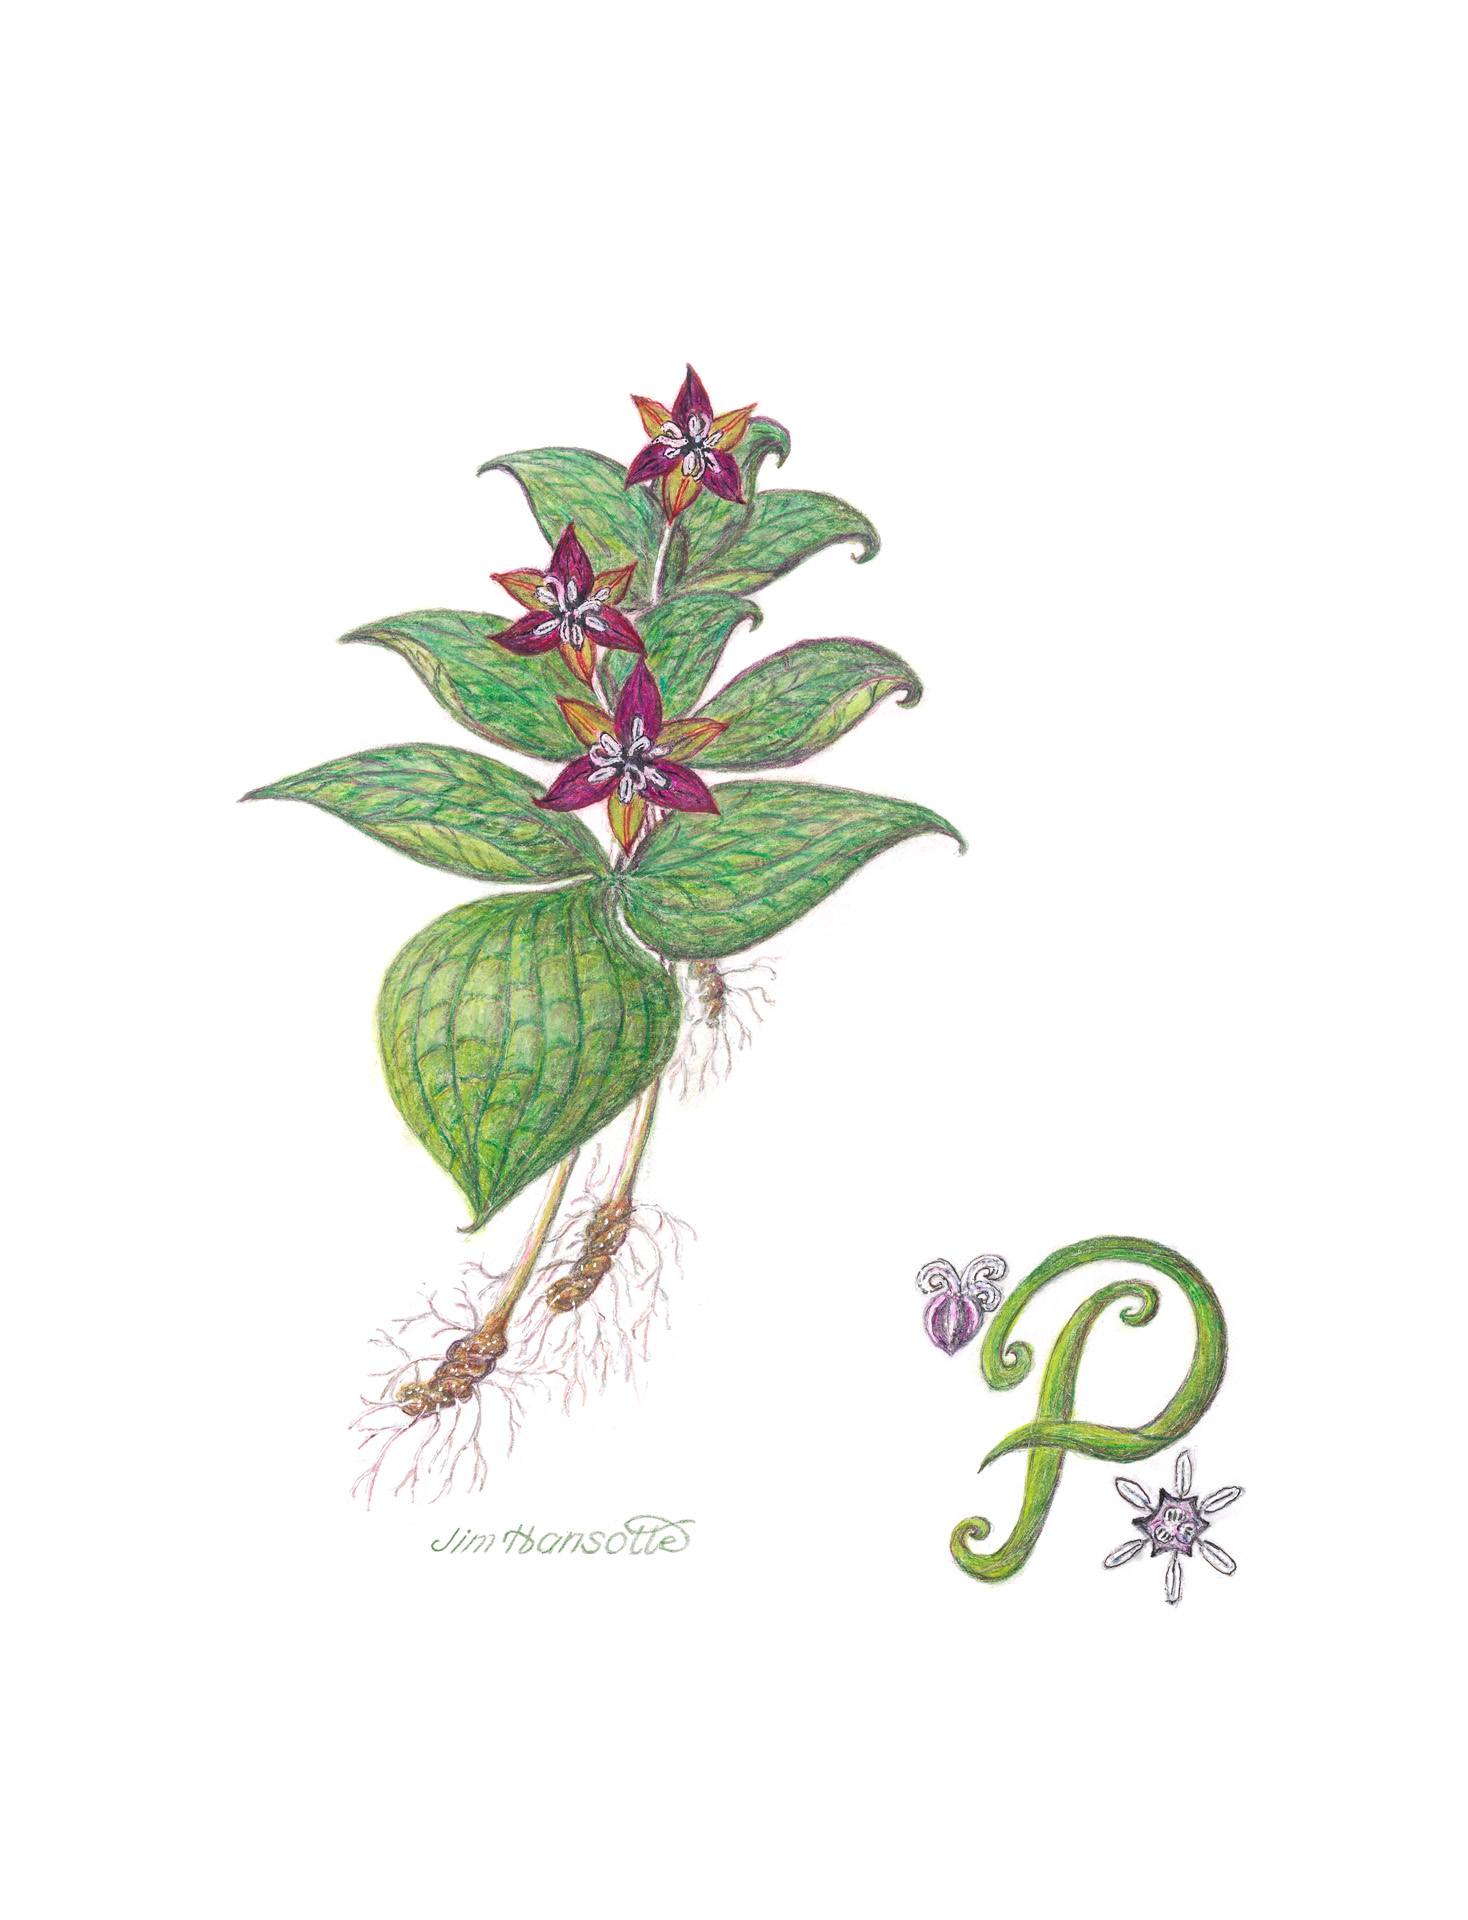 Purple trillium, Trillium erectum, Gicleè print of colored pencil and pen and ink by Jim Hansotte